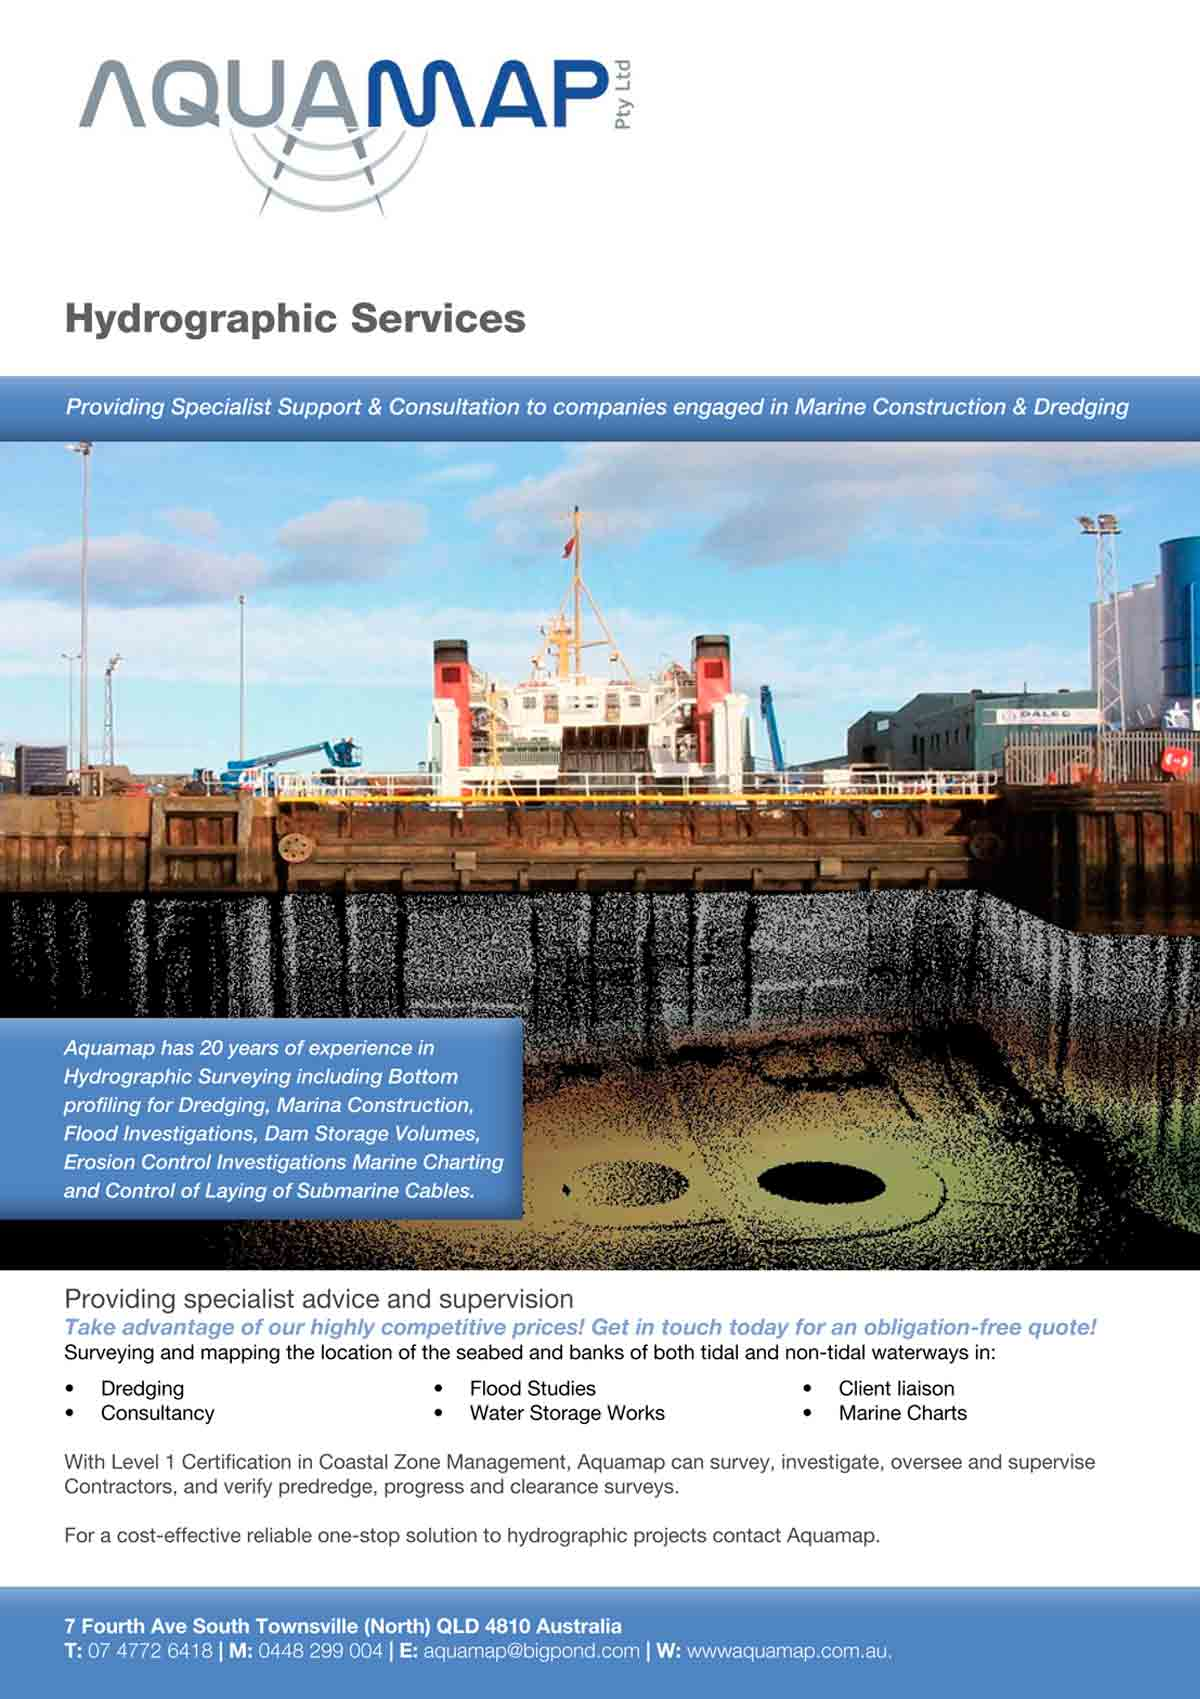 Aquamap Hydrographic Services